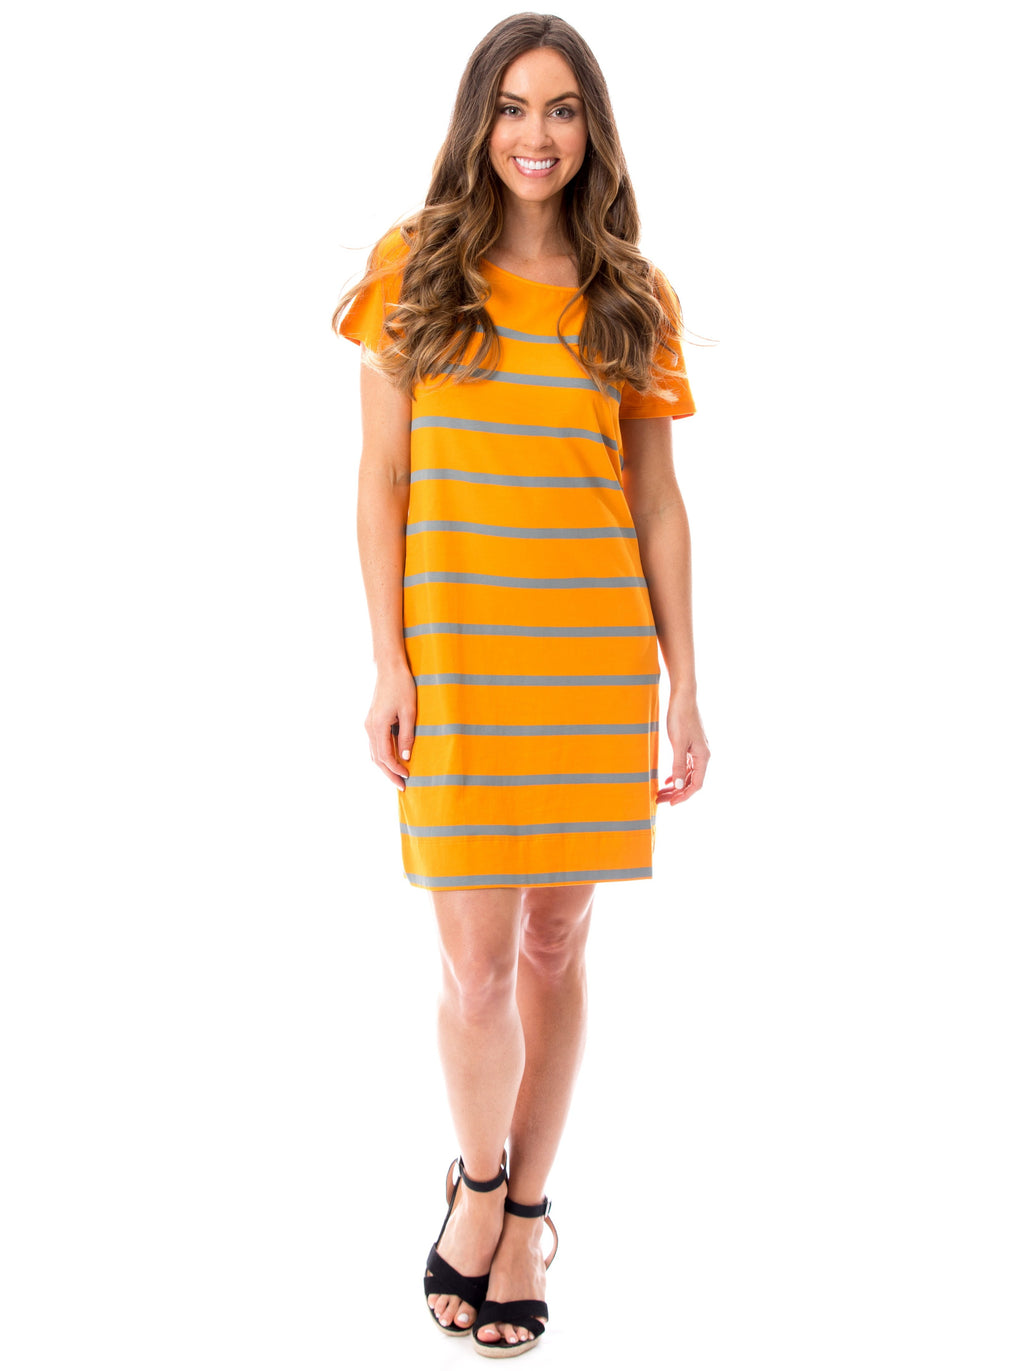 Short Sleeve Stripes | Dress | Orange + Gray